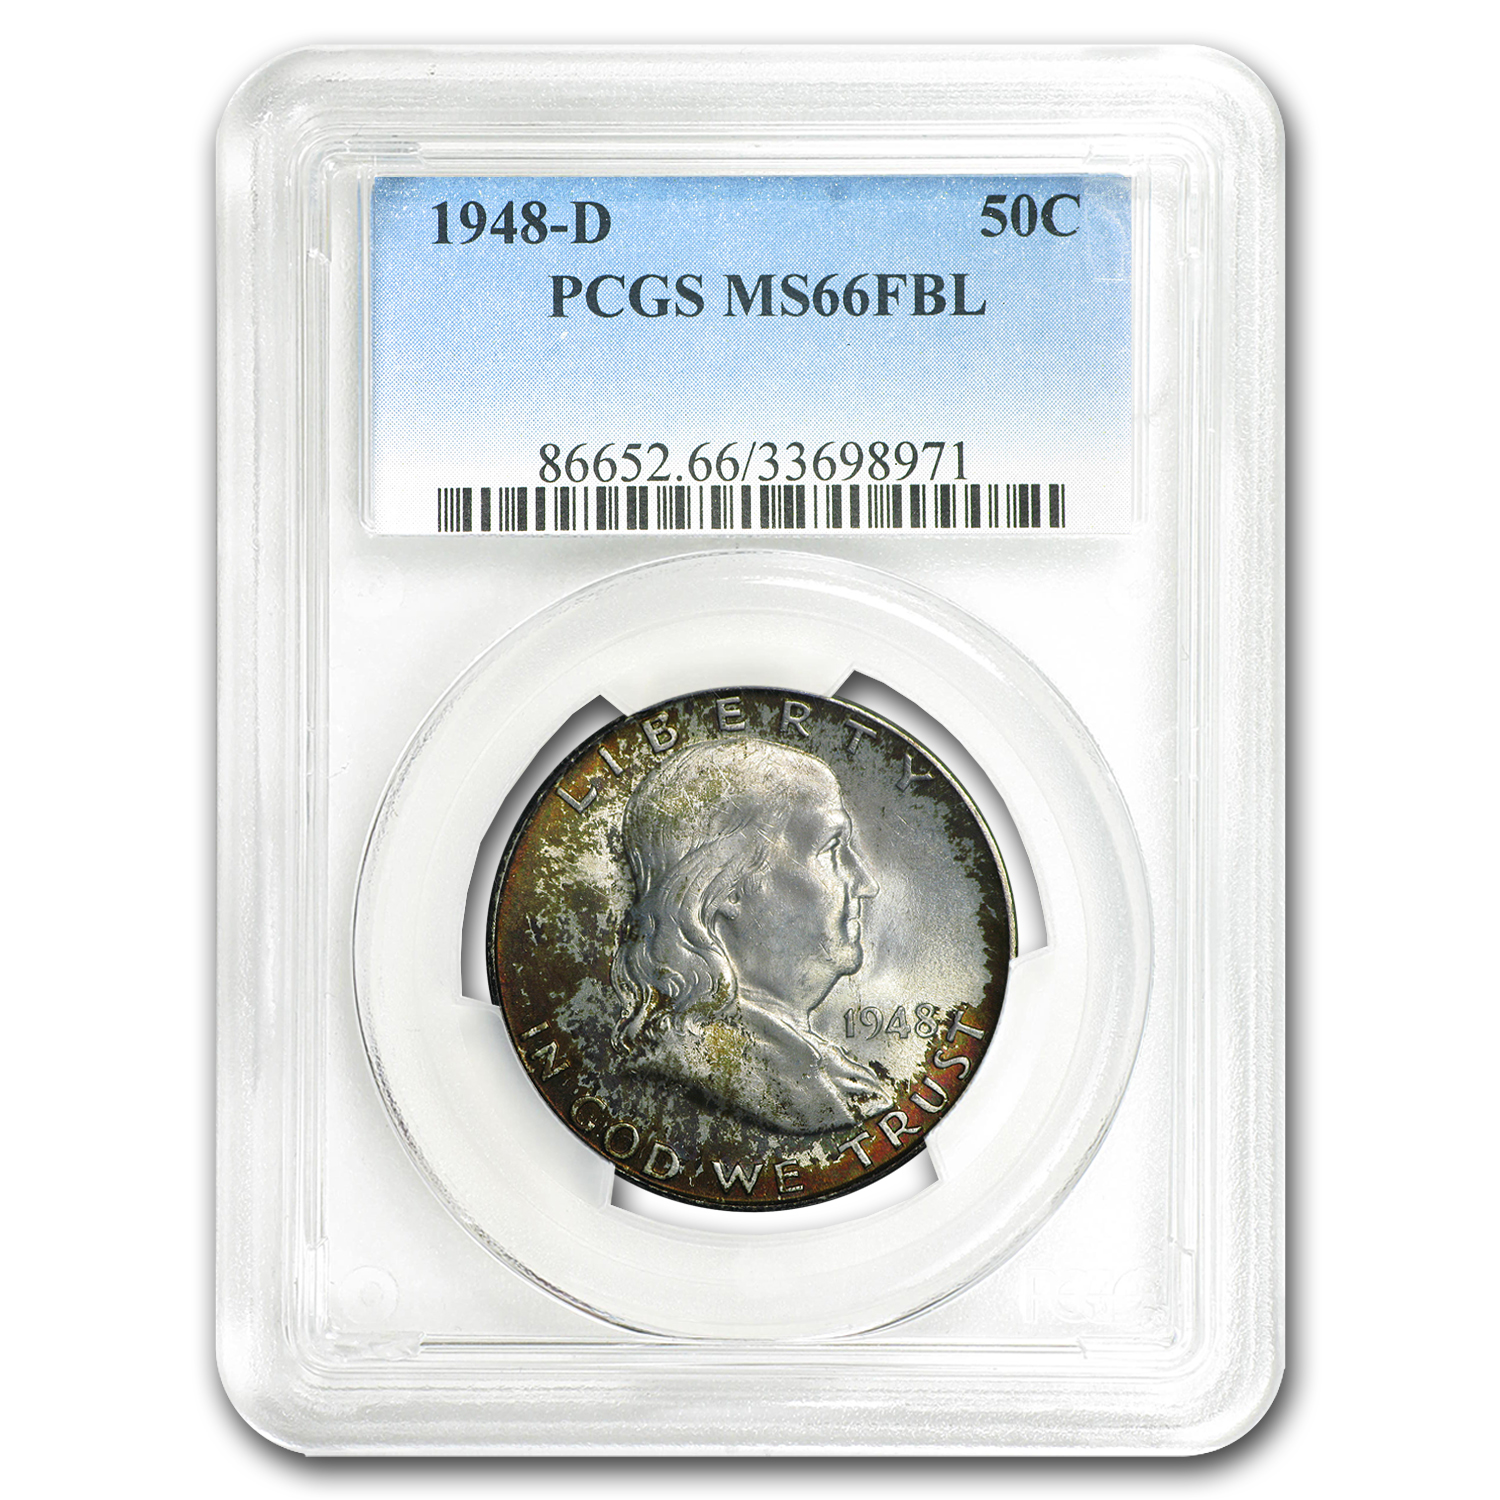 1948-D Franklin Half Dollar MS-66 PCGS (FBL, Mint Set Toning)